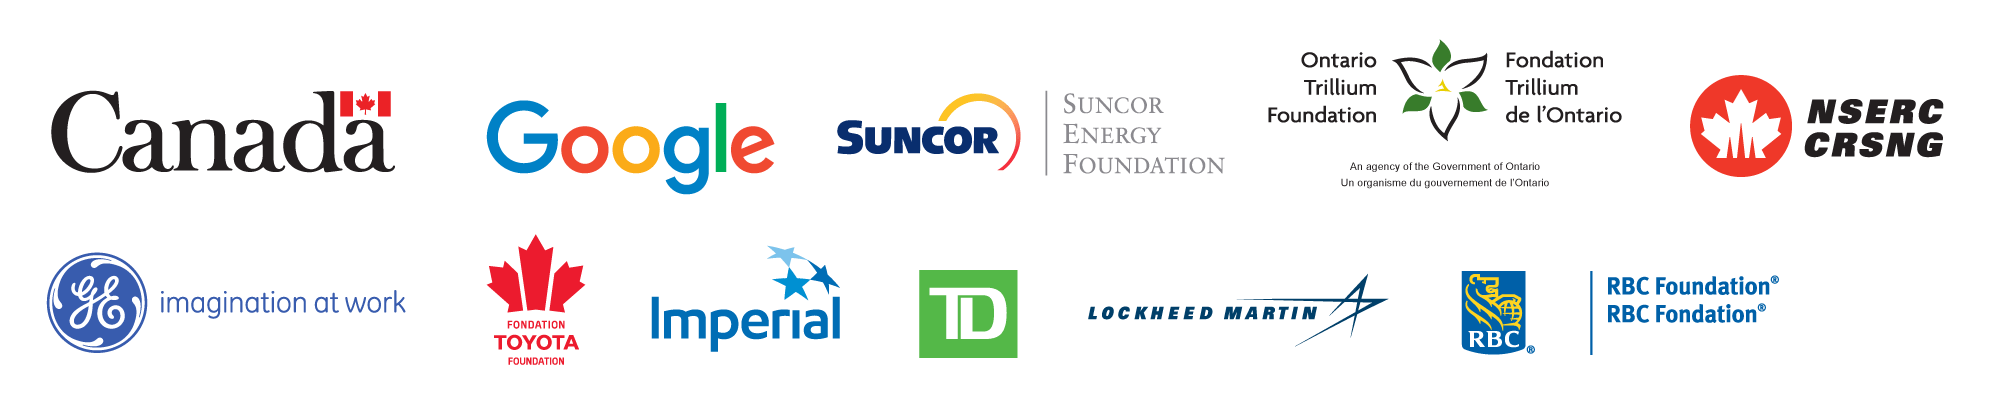 Government of Canada, Google, Suncor Energy Foundation, Ontario Trillium Foundation, General Electric, NSERC-CRSNG, Toyota Foundation, TD, Lockheed Martin, Imperial Oil, GE, RBC